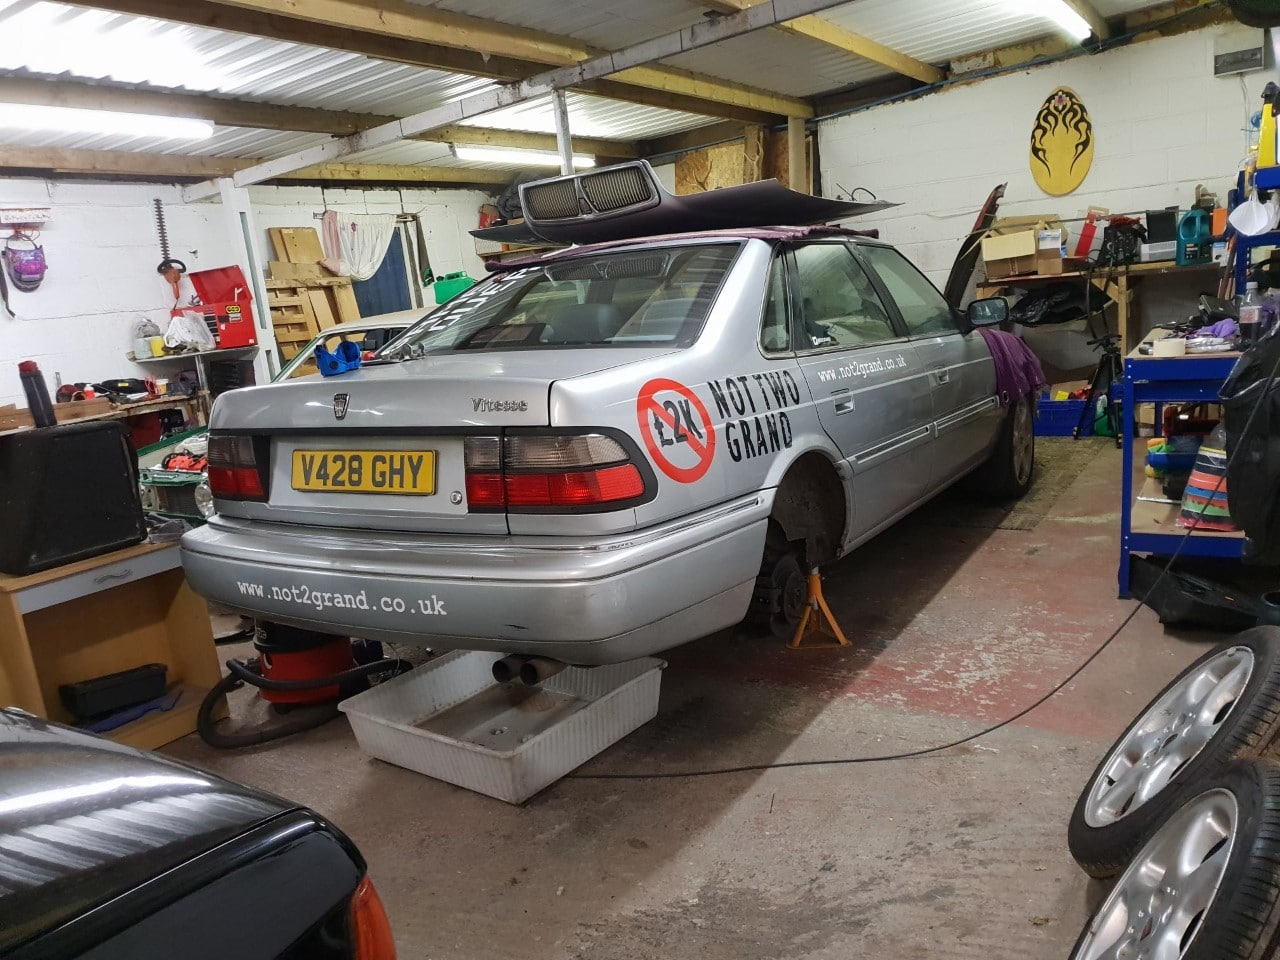 Rover 800, Rover Vitesse, Rover 800 Vitesse, Rover Vitesse Sport, Vitesse, Vitesse Sport, T16 Rover, T series turbo, turbocharged, project car, motoring, automotive, car, cars, car restoration, Longbridge, not2grand, www.not2grand.co.uk, adrian flux, classic car, retro car, featured, ebay, ebay motors, autotrader,